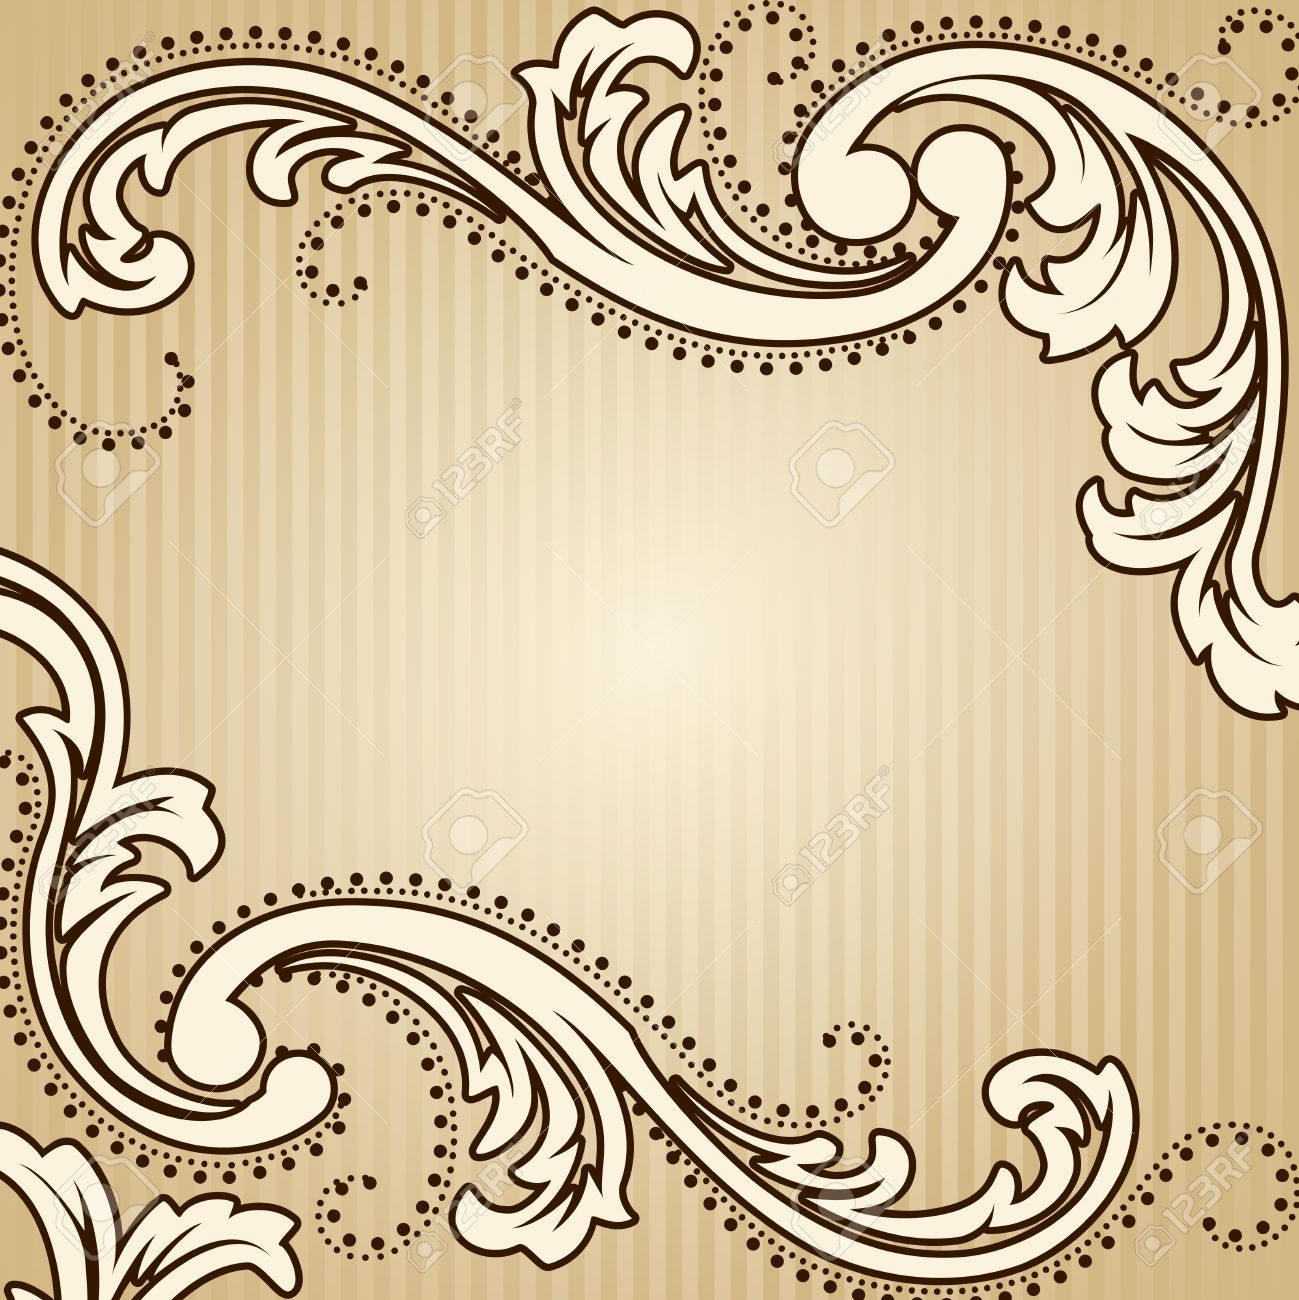 Elegant Square Sepia Tone Background Inspired By Victorian Era